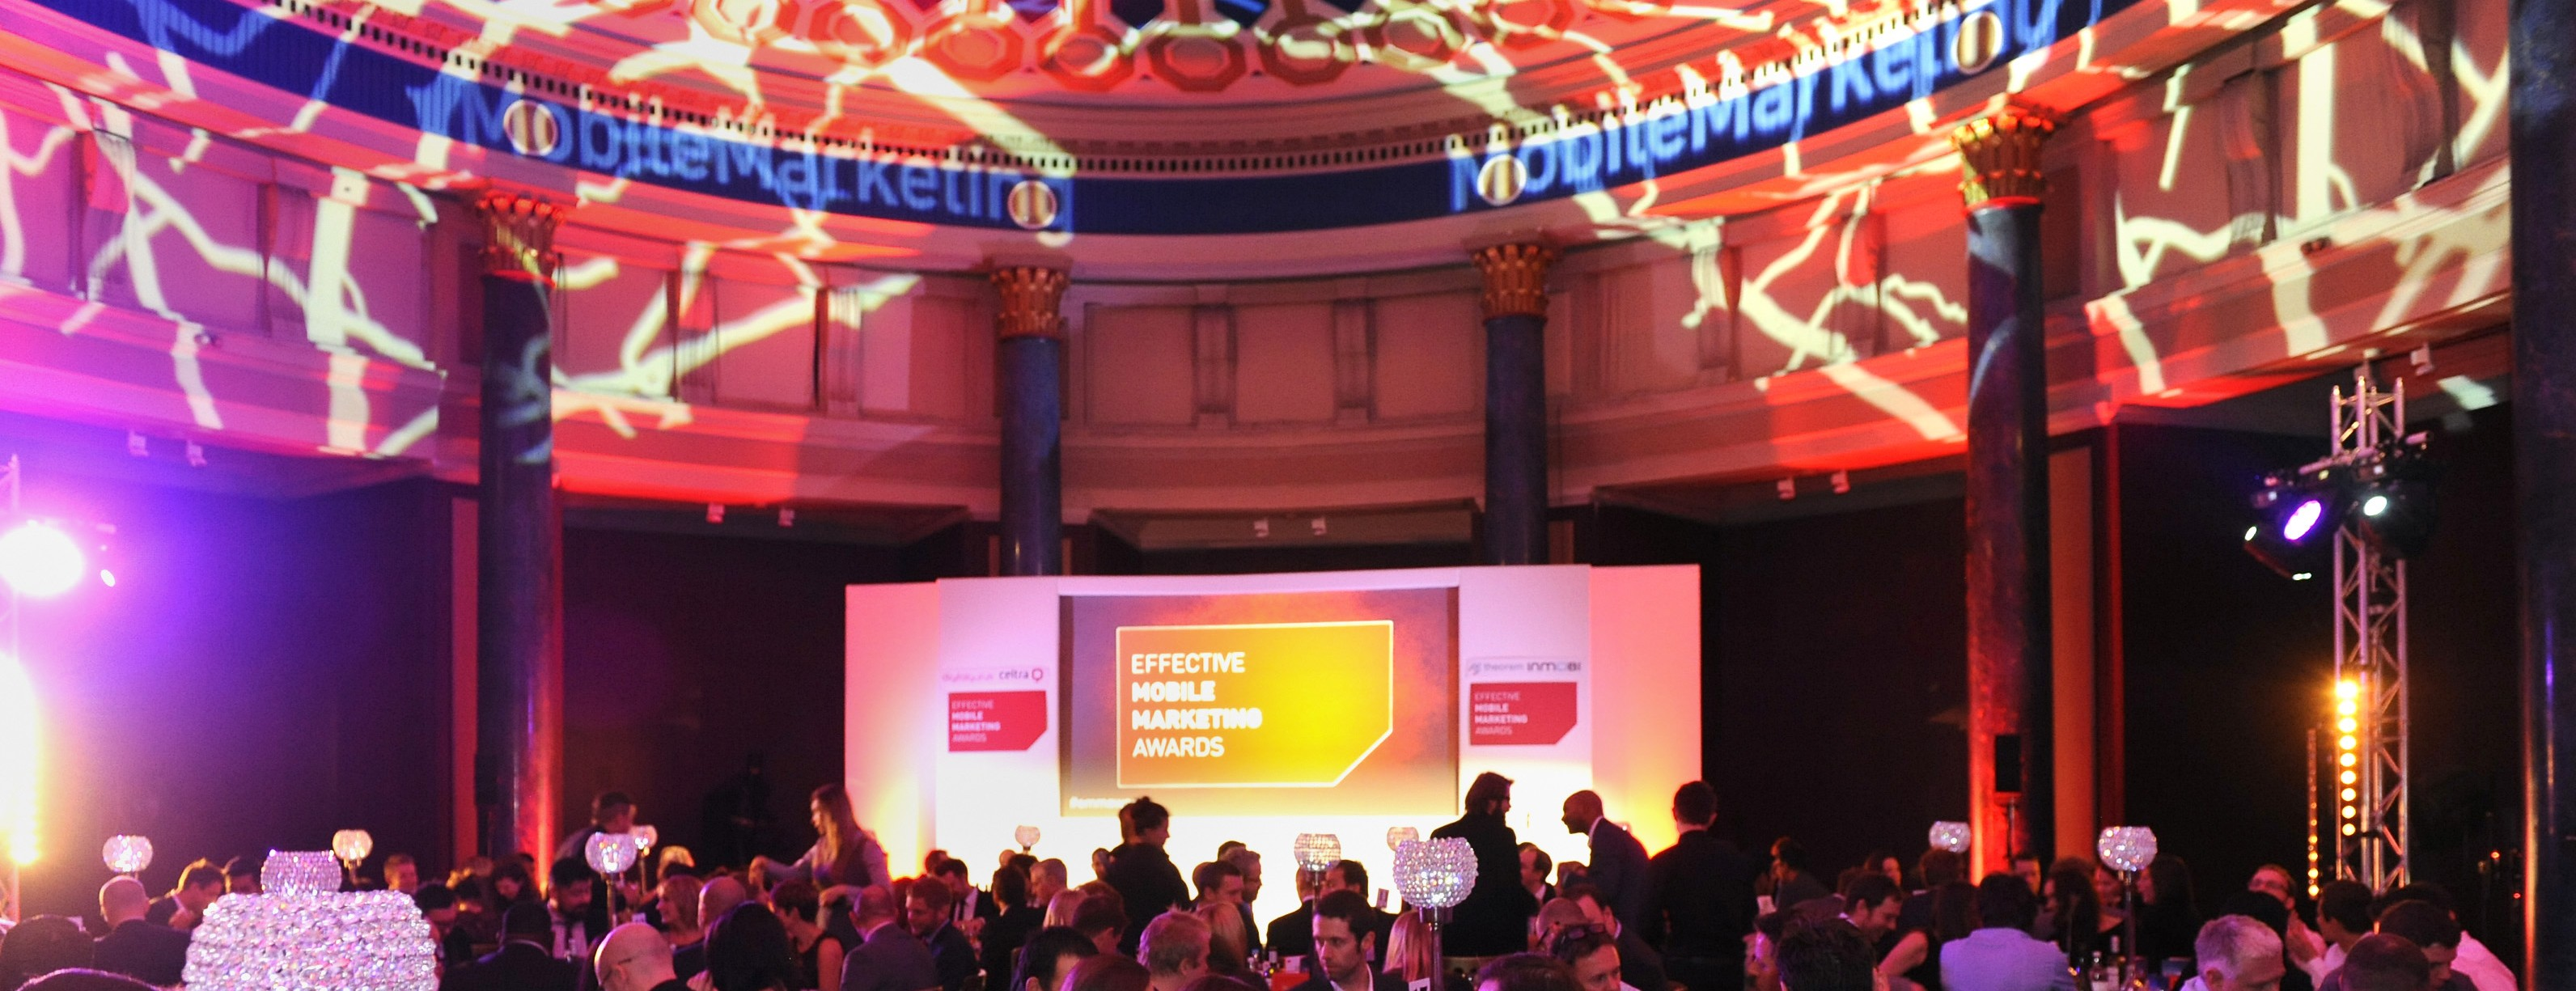 Effective Mobile Marketing Awards Shortlist Unveiled